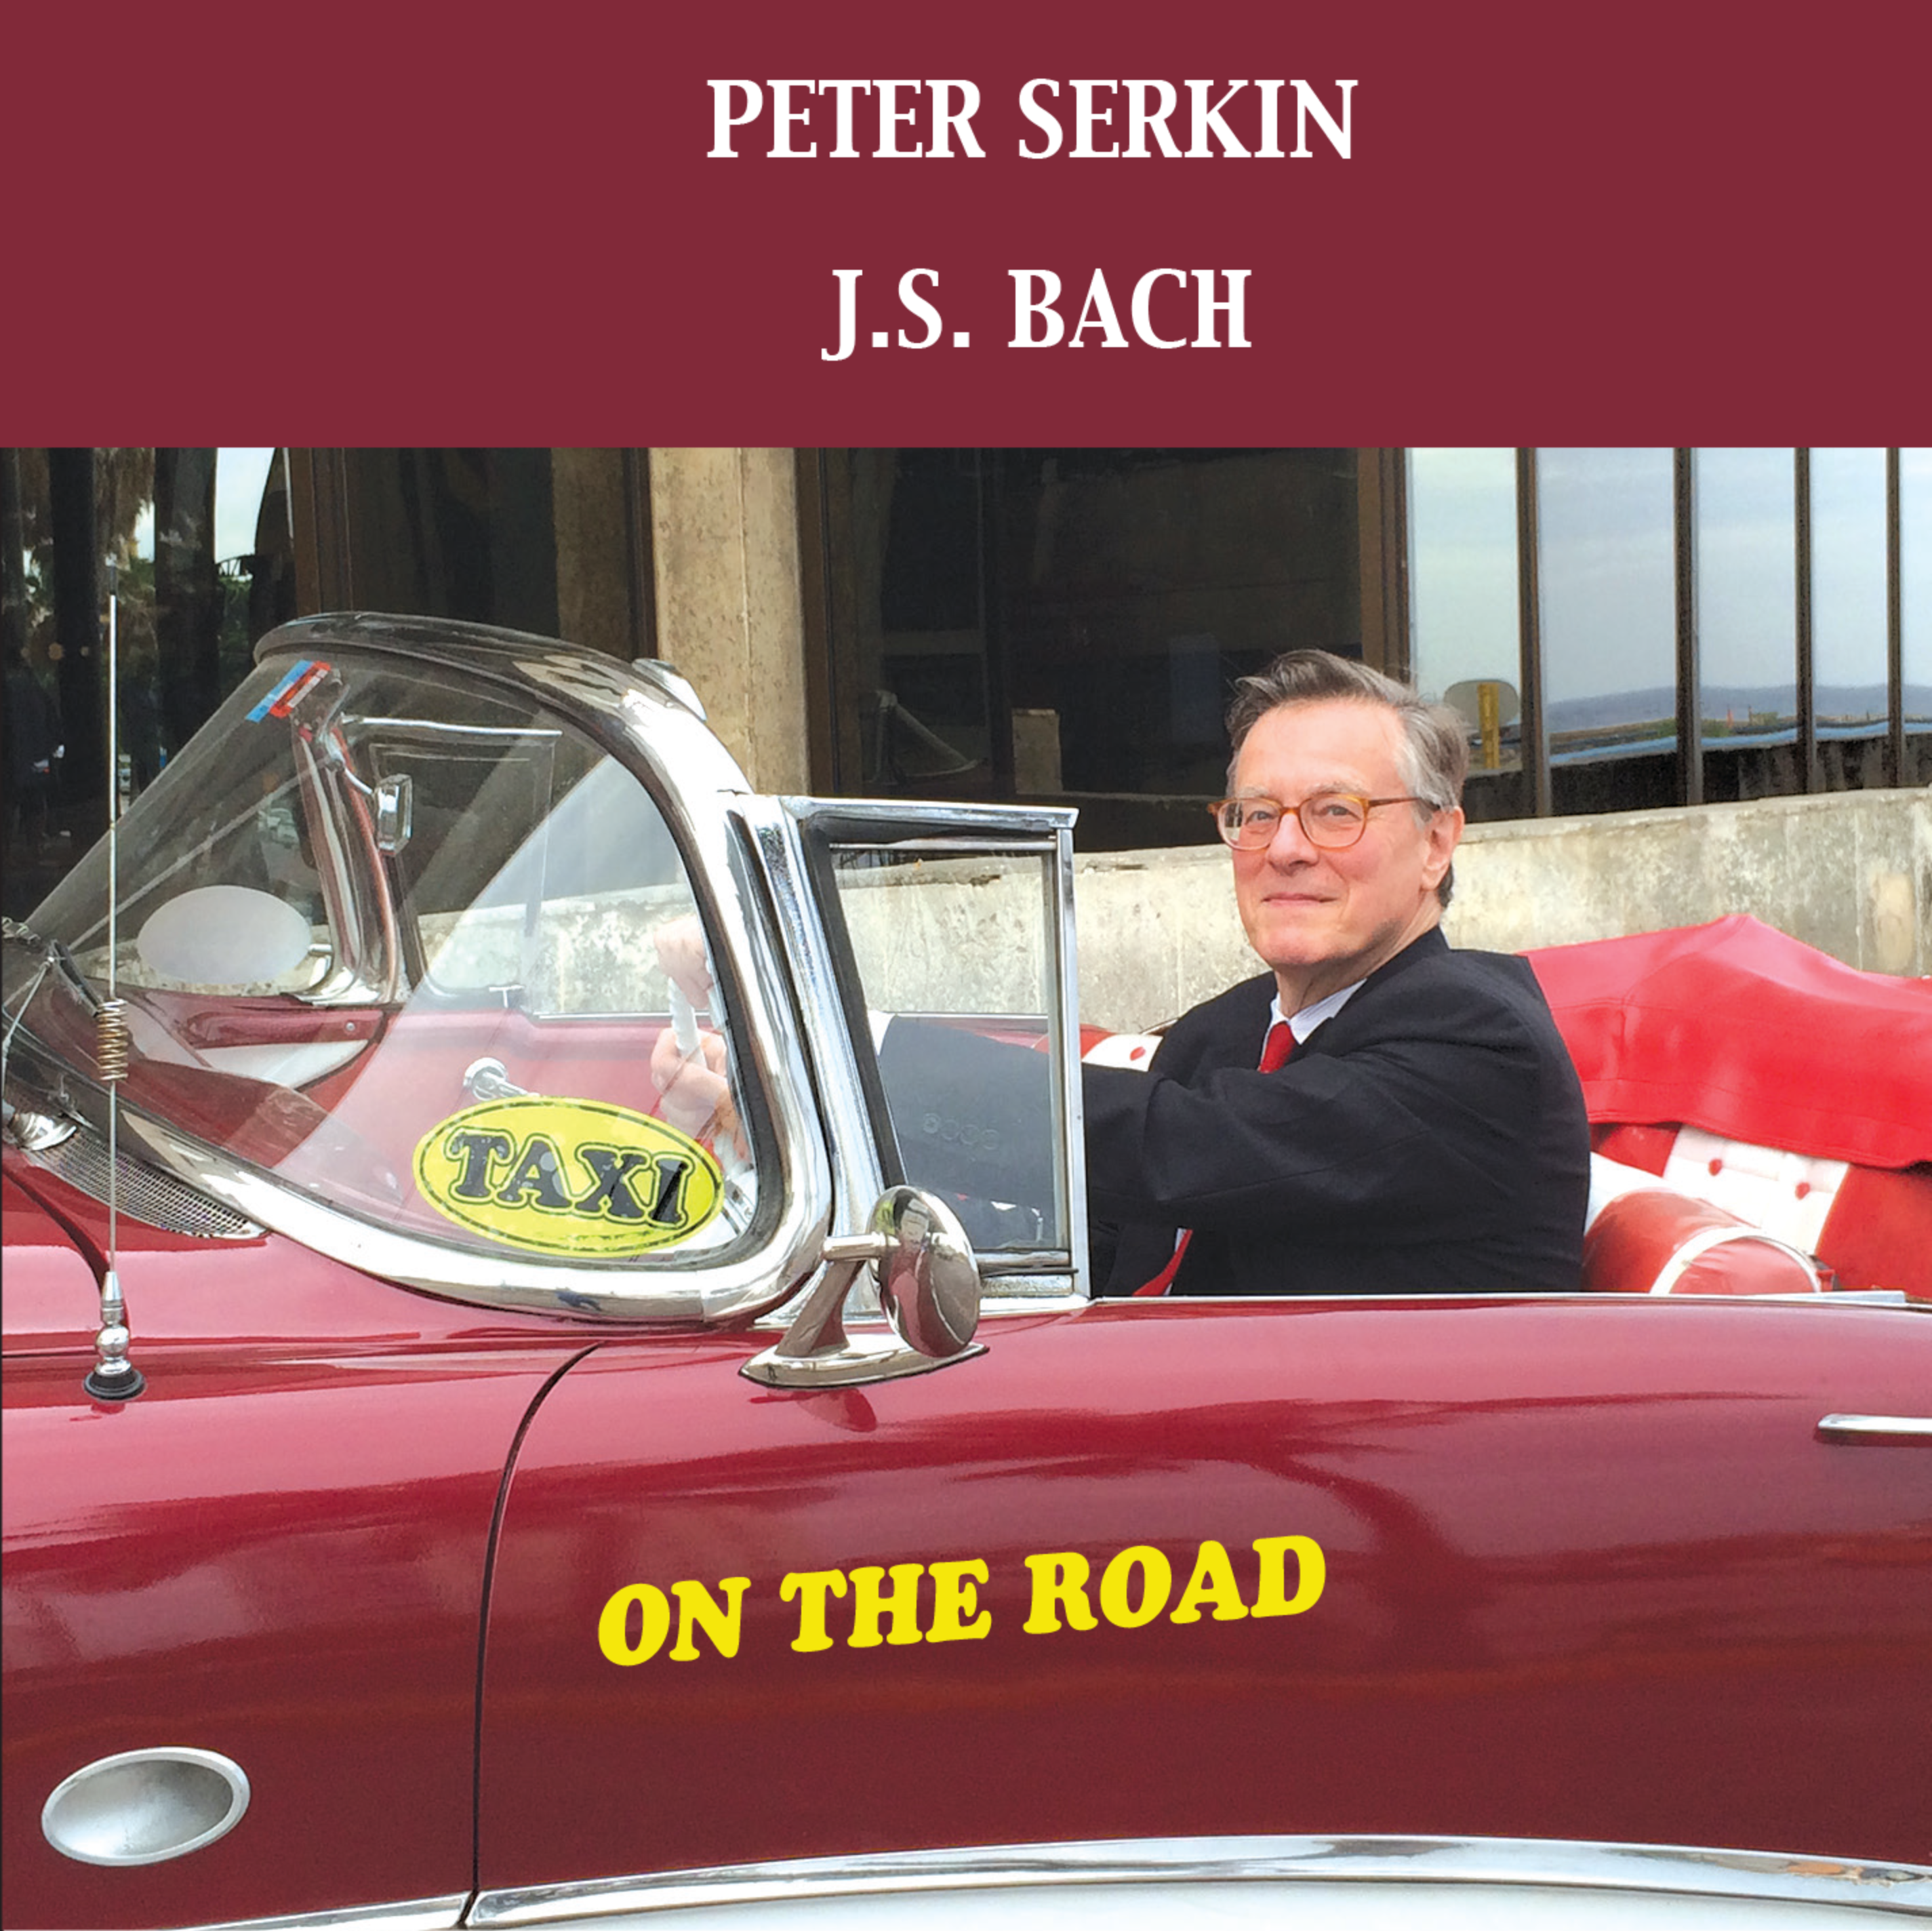 Peter Serkin - J.S. Bach On The Road (FLAC 44.1-16)